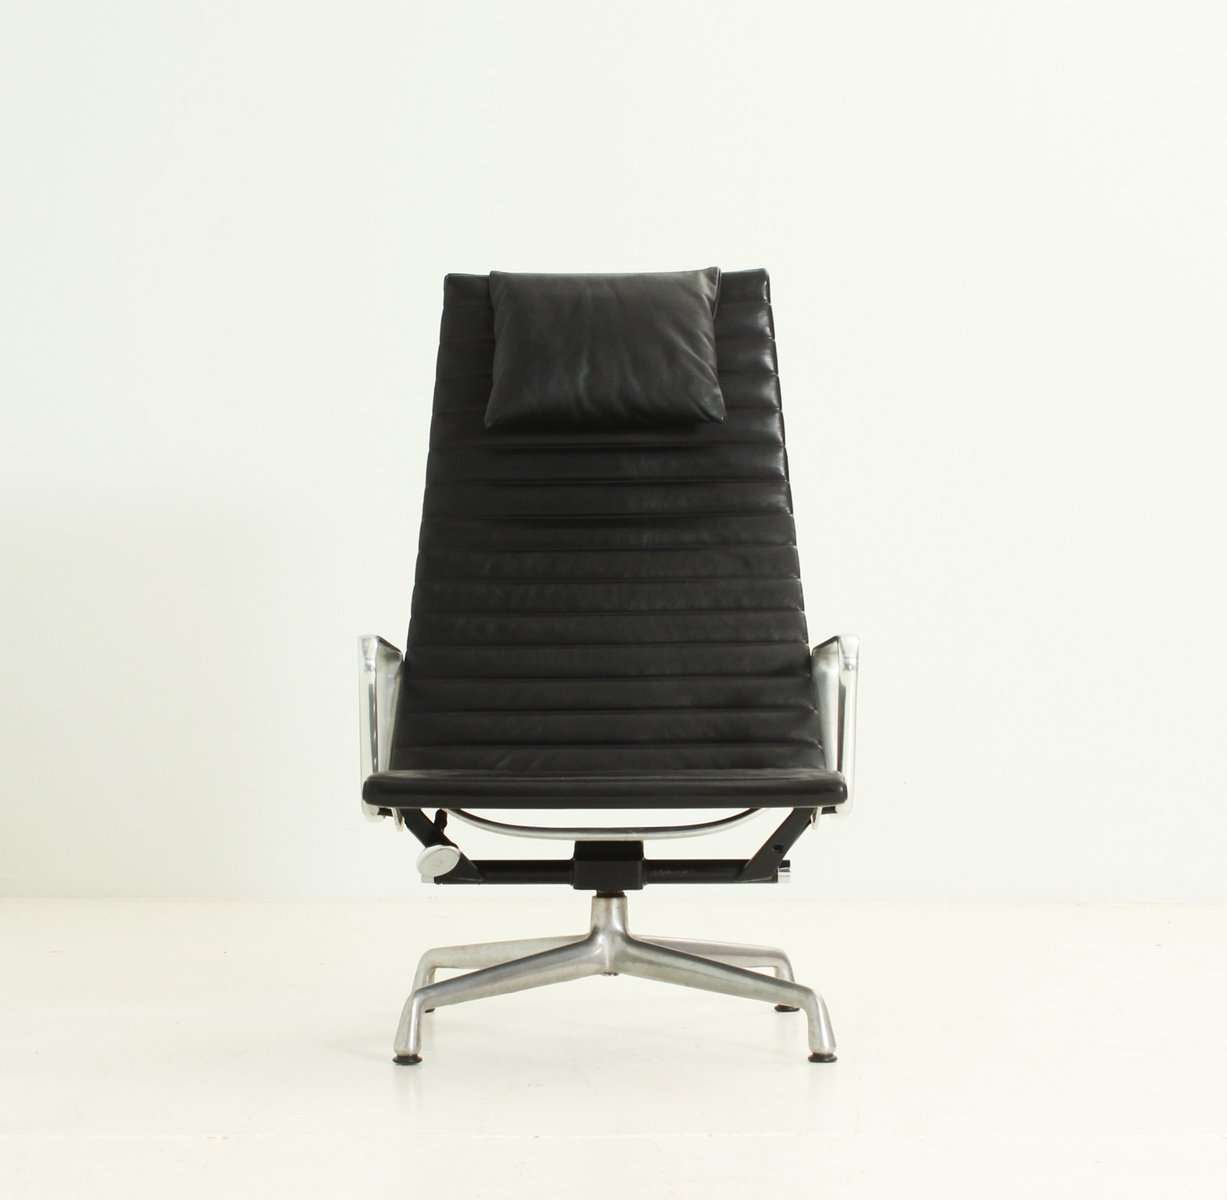 ea124 black leather lounge chair by charles and ray eames 1960s for sale at pamono. Black Bedroom Furniture Sets. Home Design Ideas